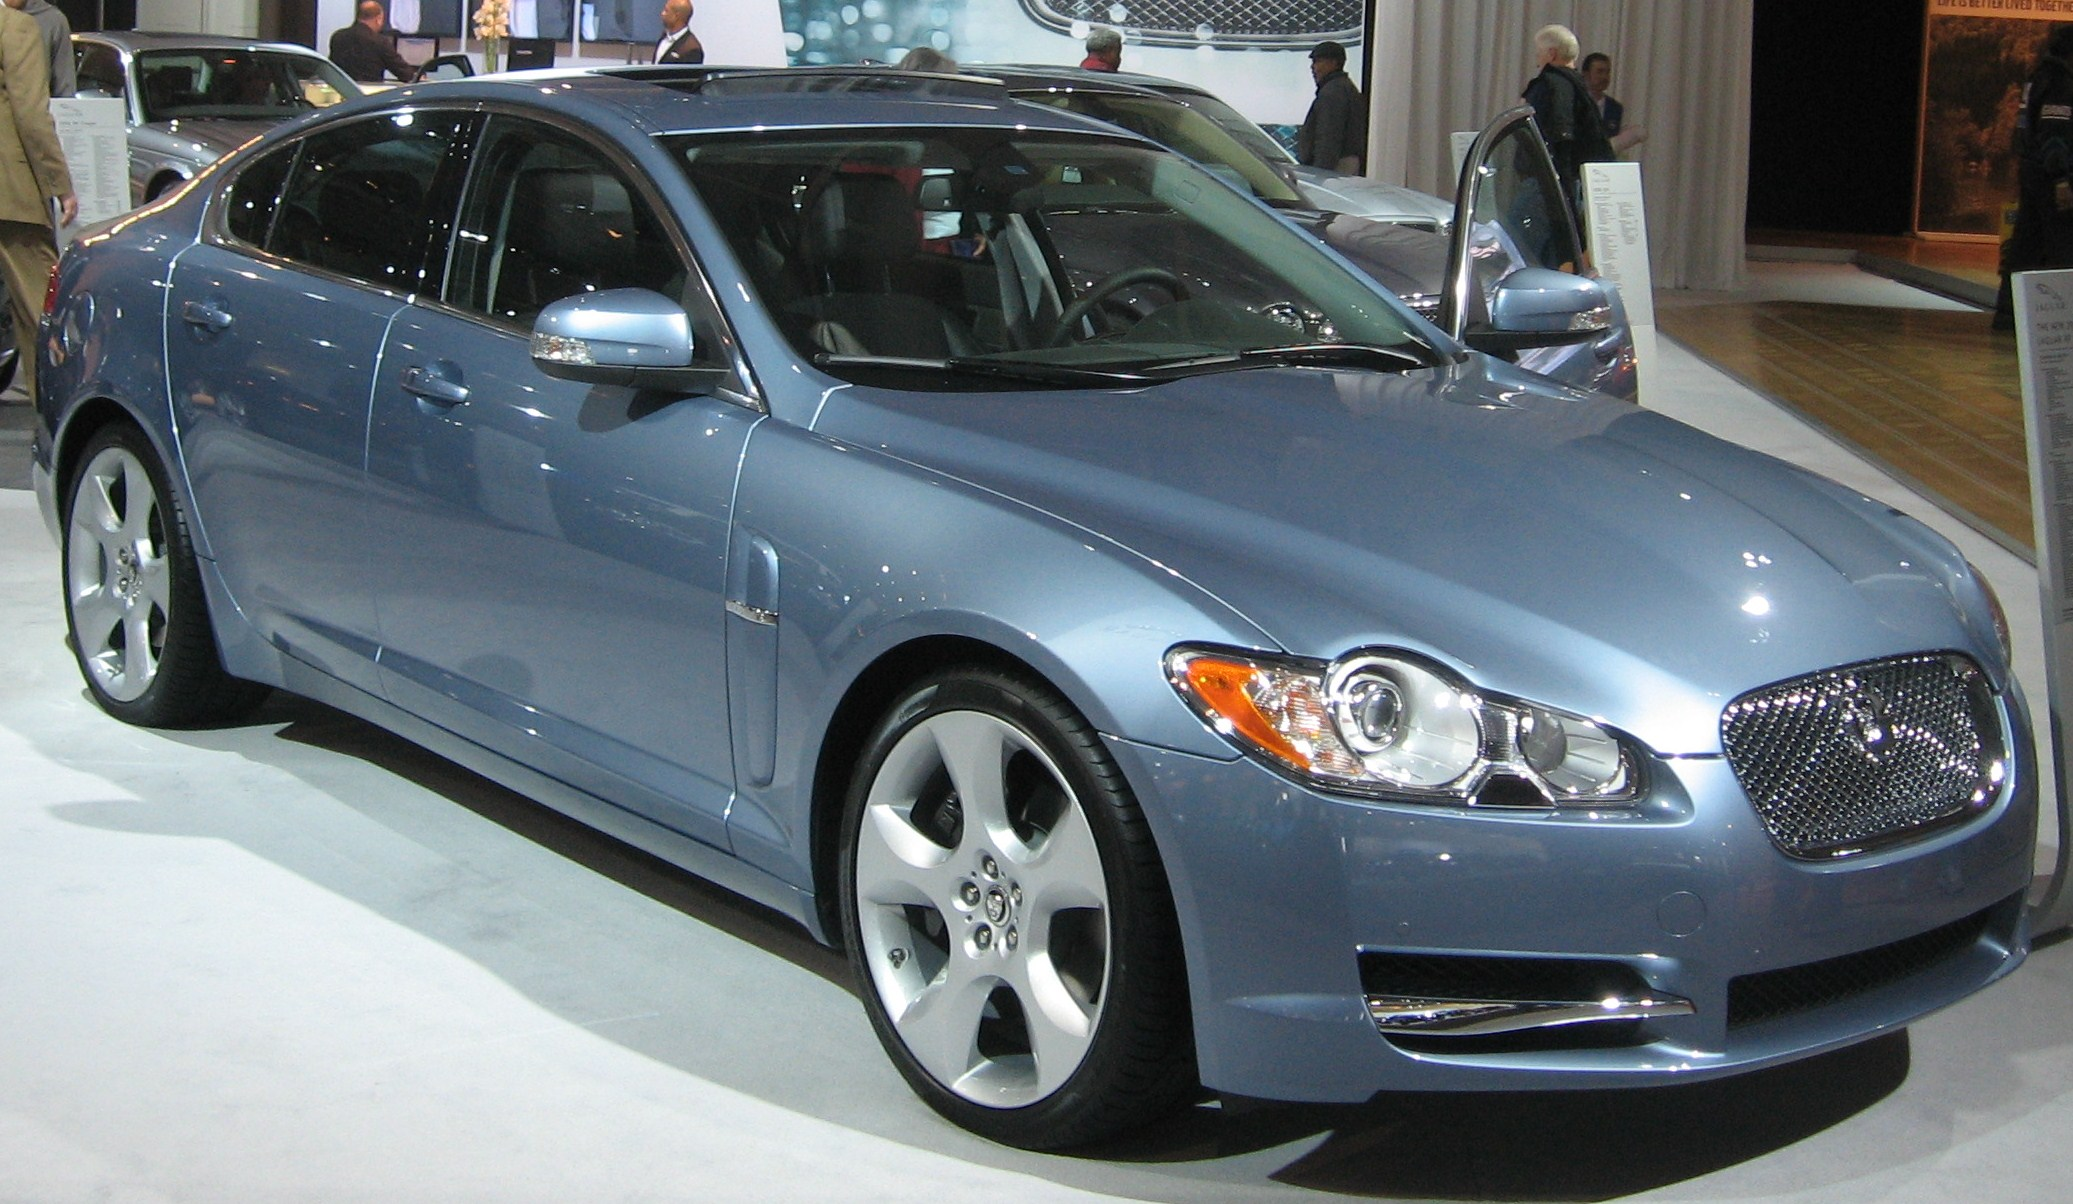 Attractive File:2009 Jaguar XF DC.JPG